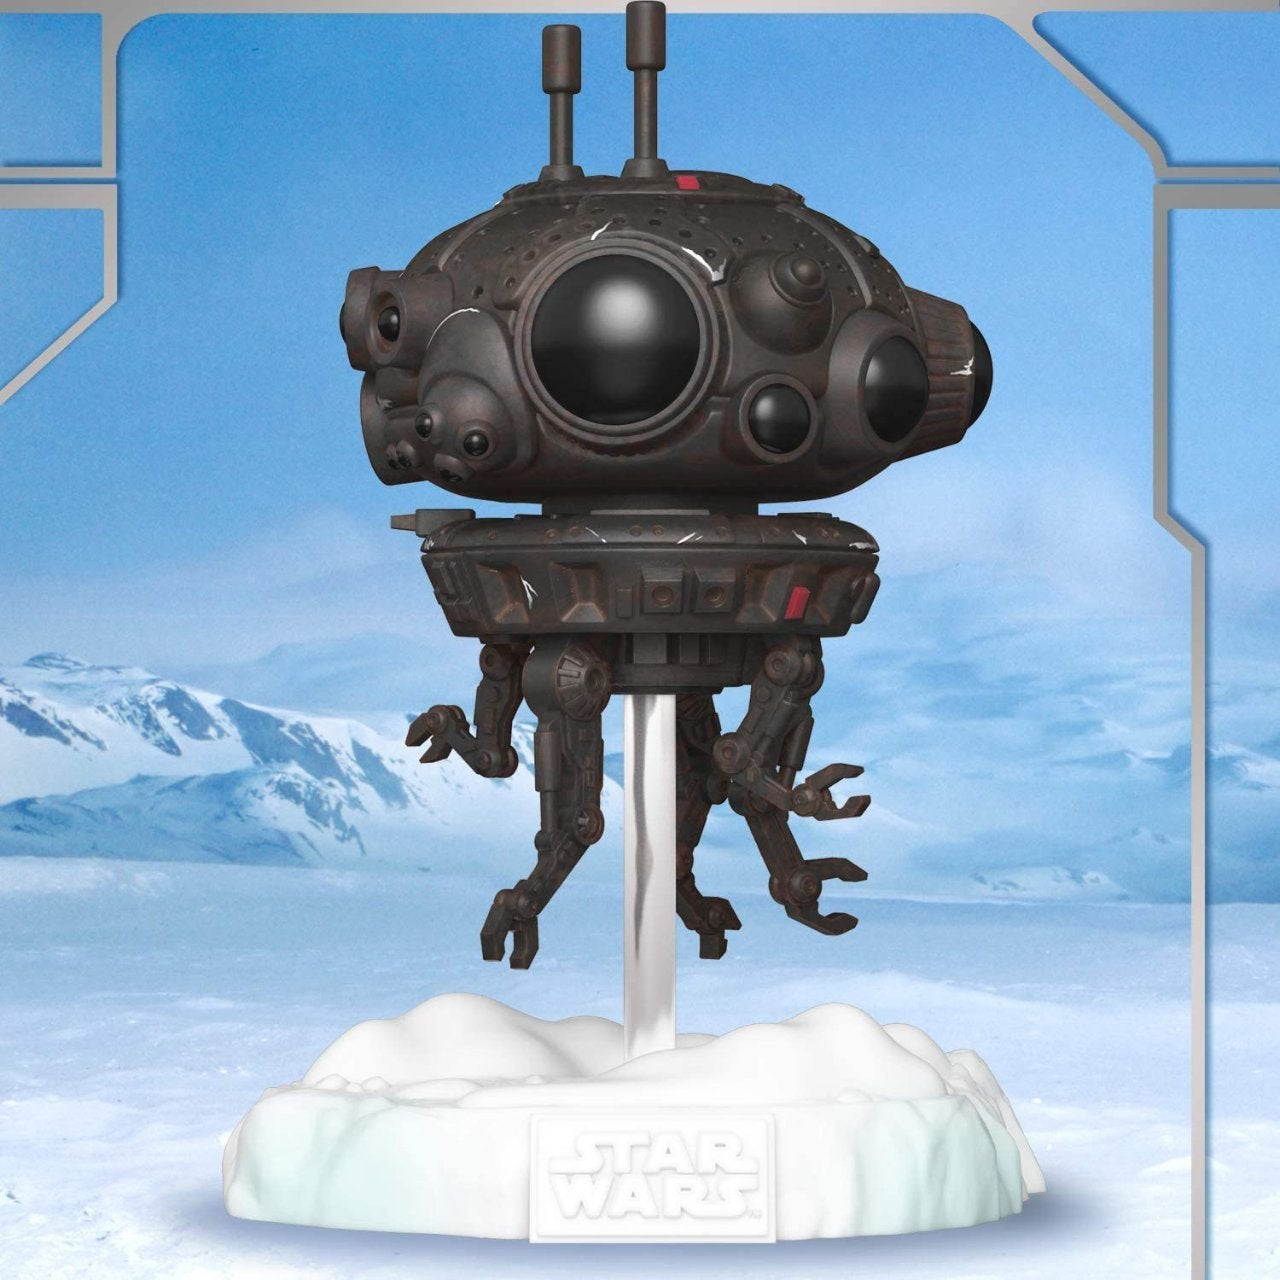 Adorable Funko Pop Imperial Probe Droid Now Available for Preorder